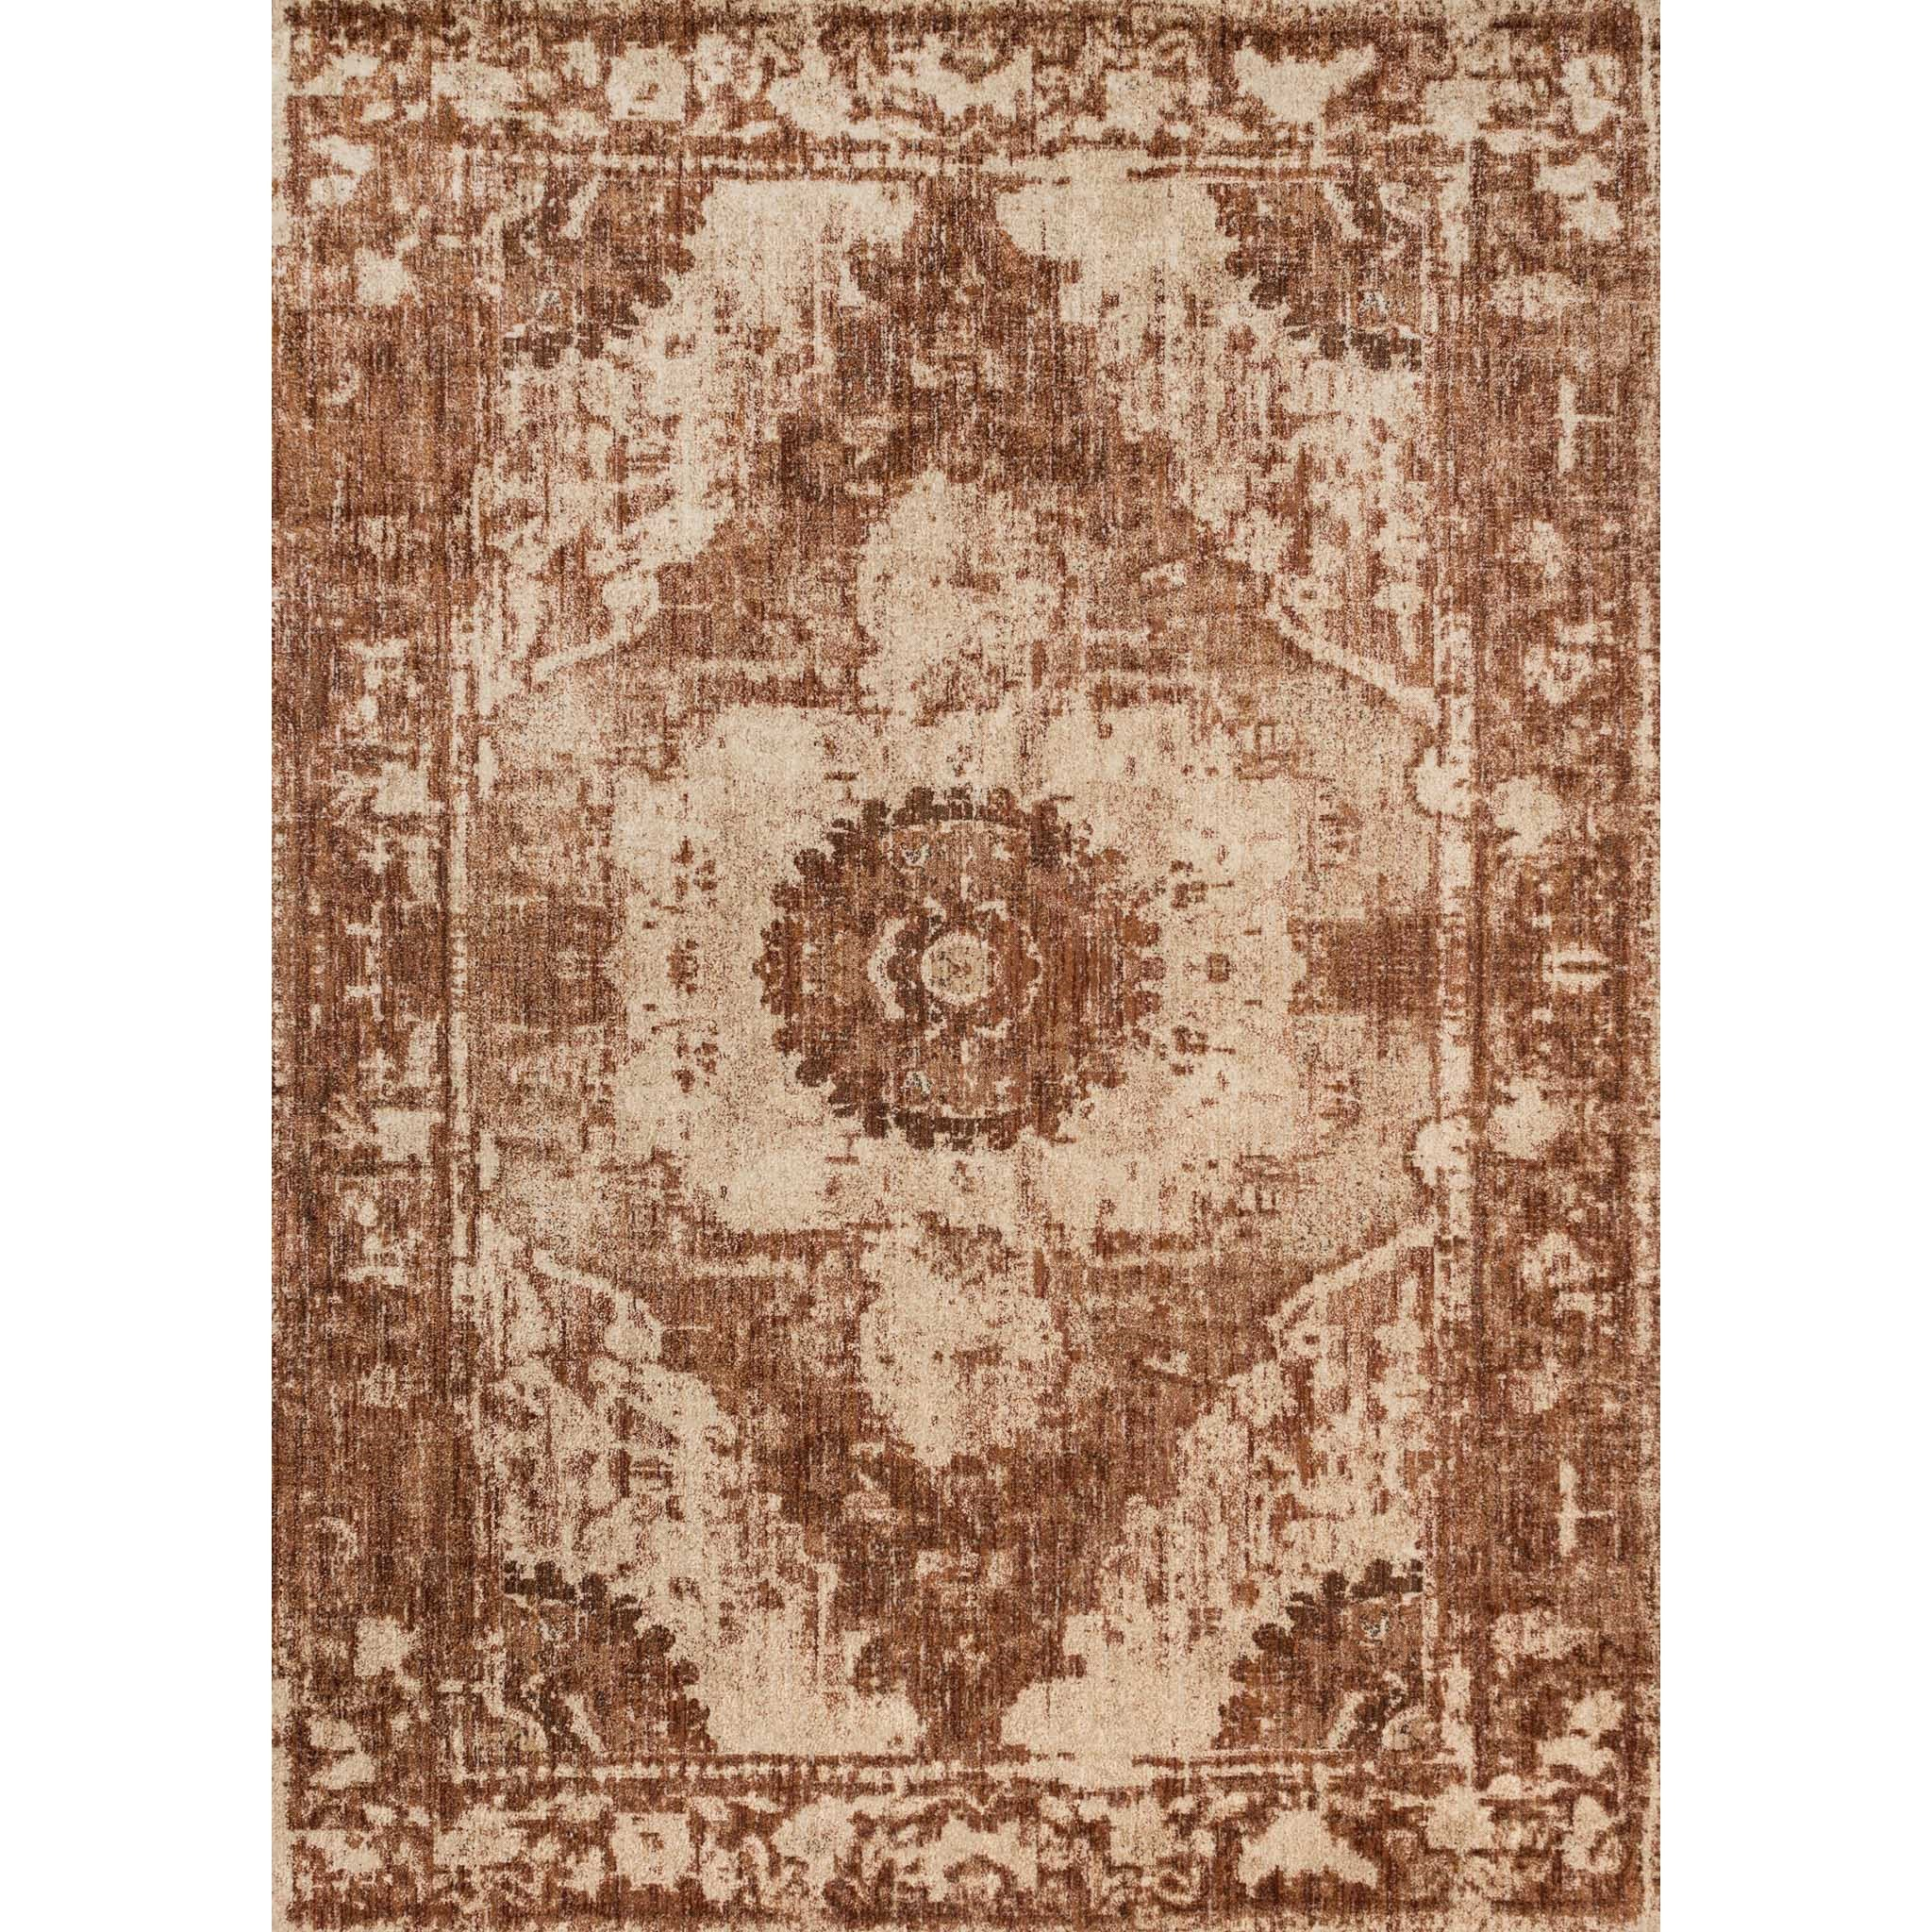 "12' 0"" x 15' 0"" Rectangle Rug"